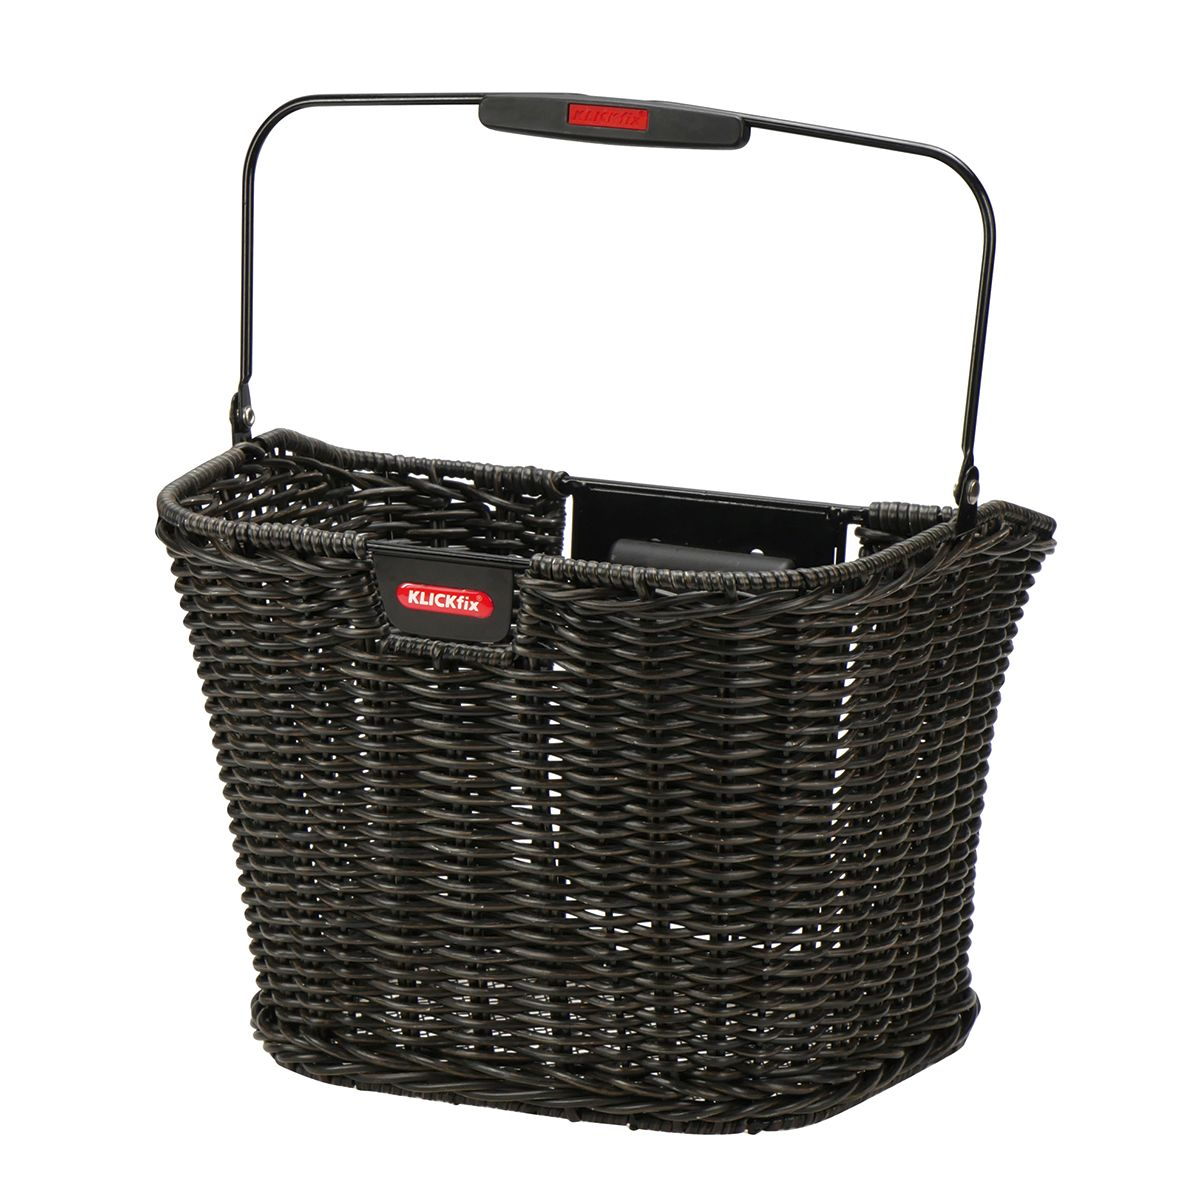 STRUCTURA RETRO front bicycle basket